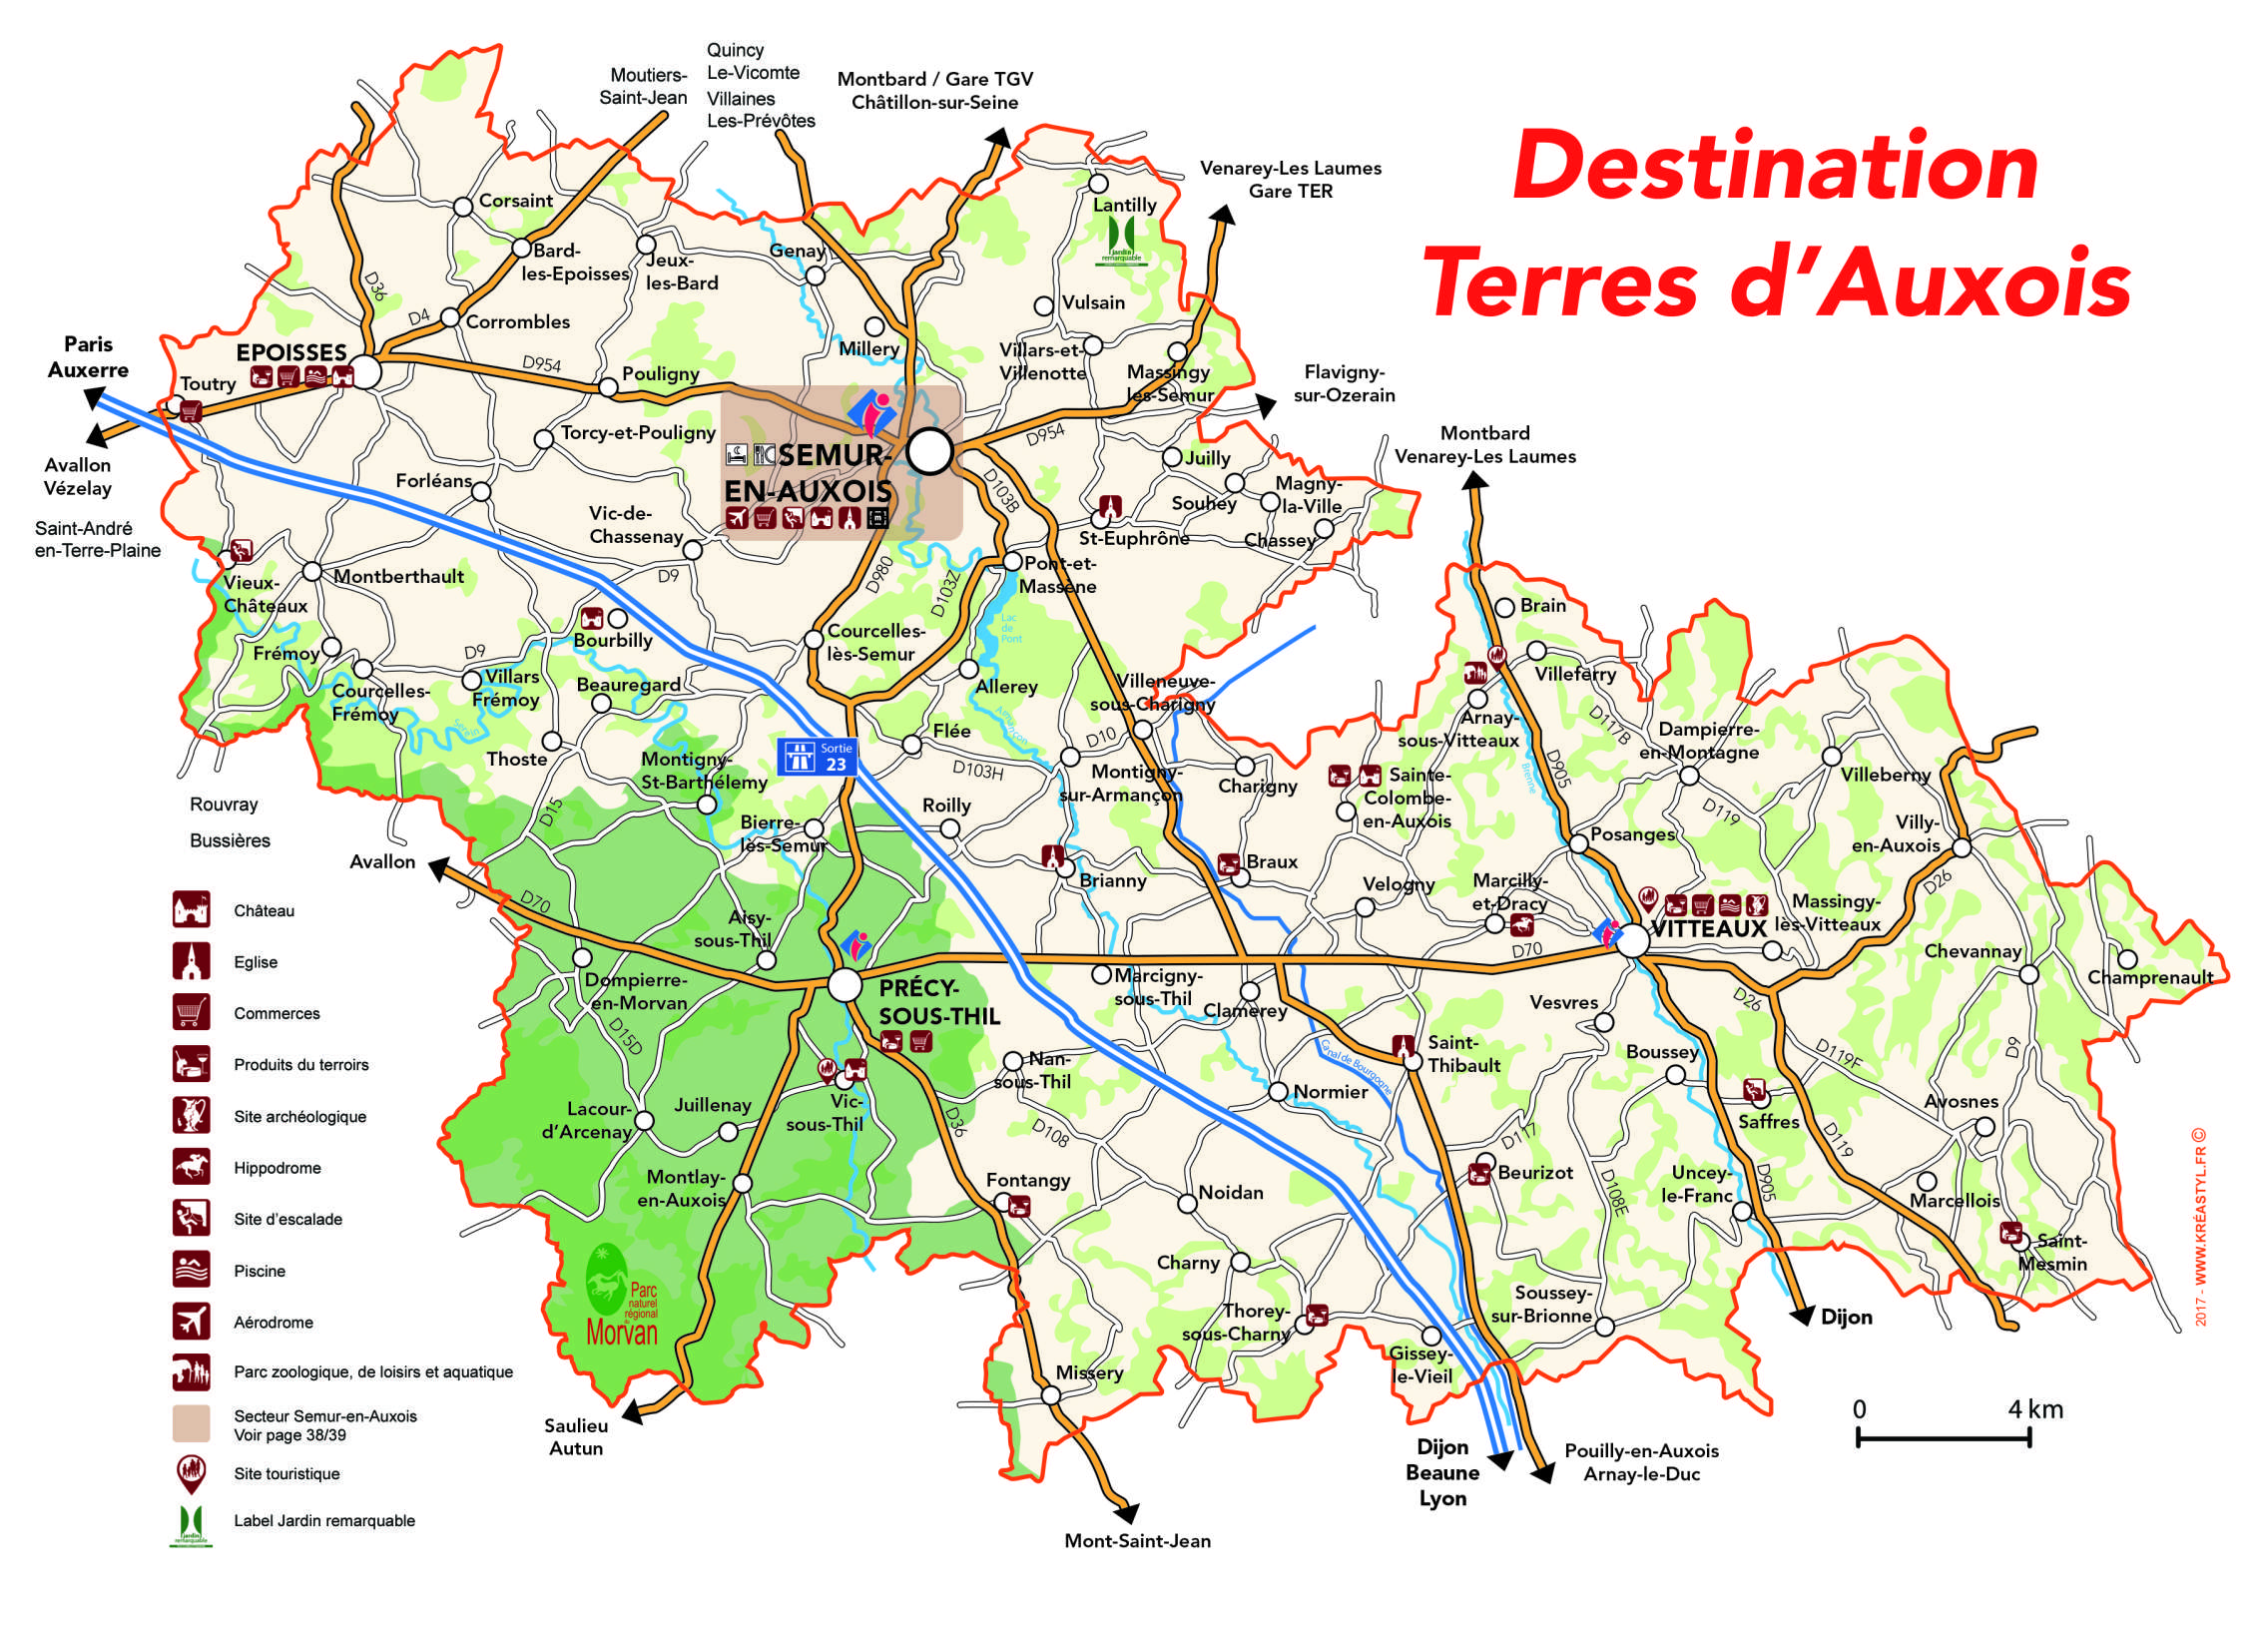 carte des terres d 39 auxois office de tourisme de semur en auxois. Black Bedroom Furniture Sets. Home Design Ideas